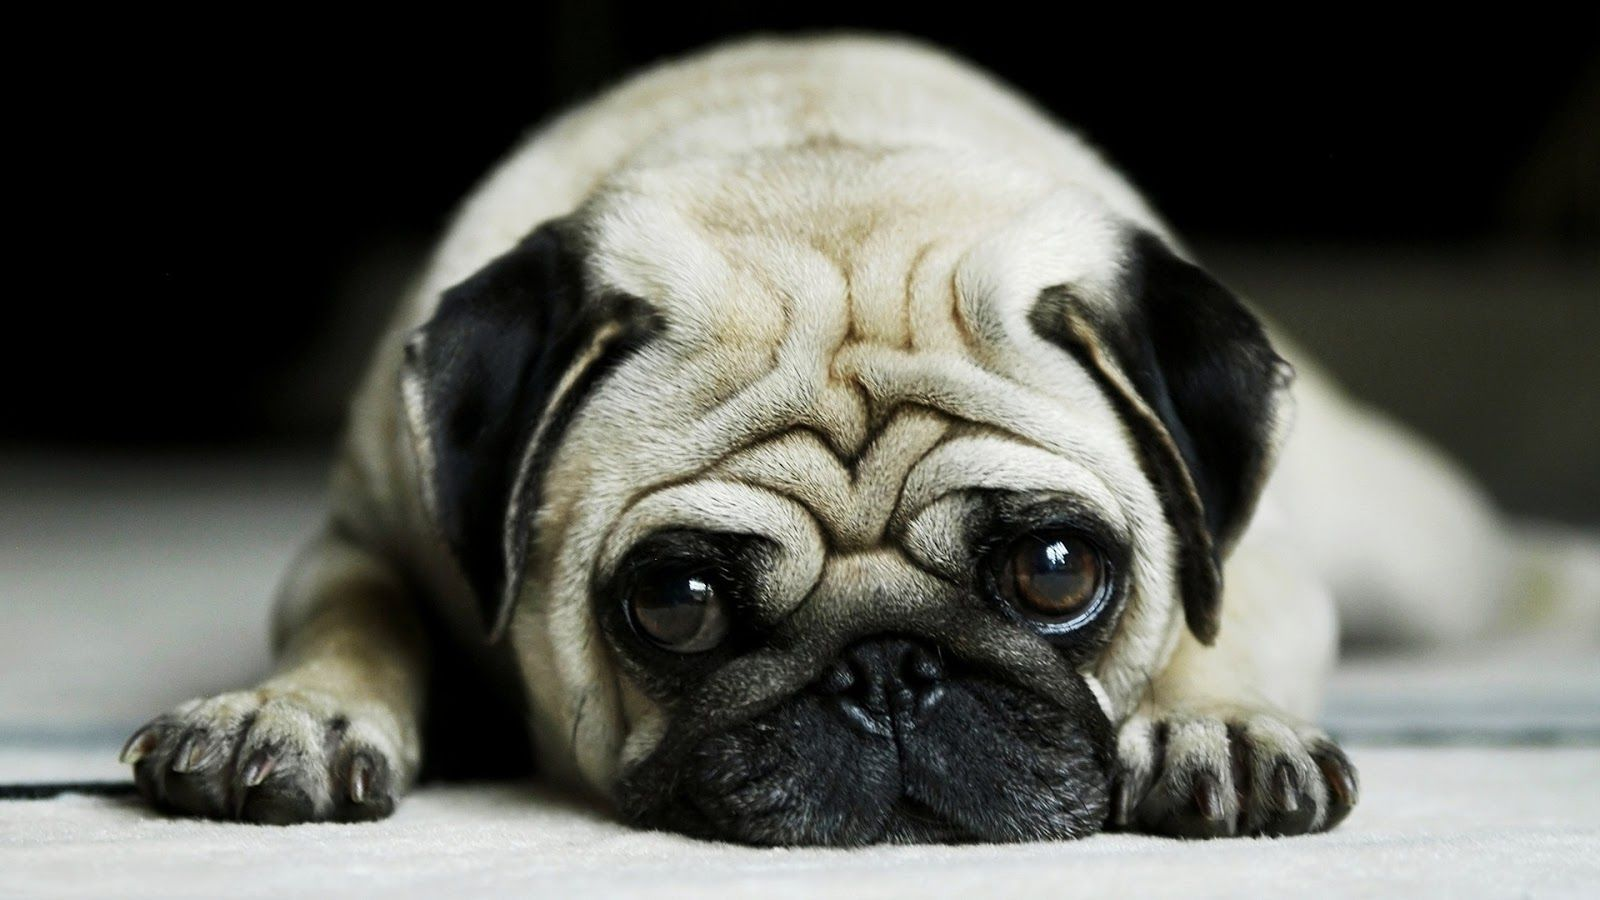 1080p Hd Danger Dog Wallpaper High Quality Desktop Iphone And Android Background And Wallpaper Animals Wallpapers Hd Cute Pugs Pugs Dog Wallpaper